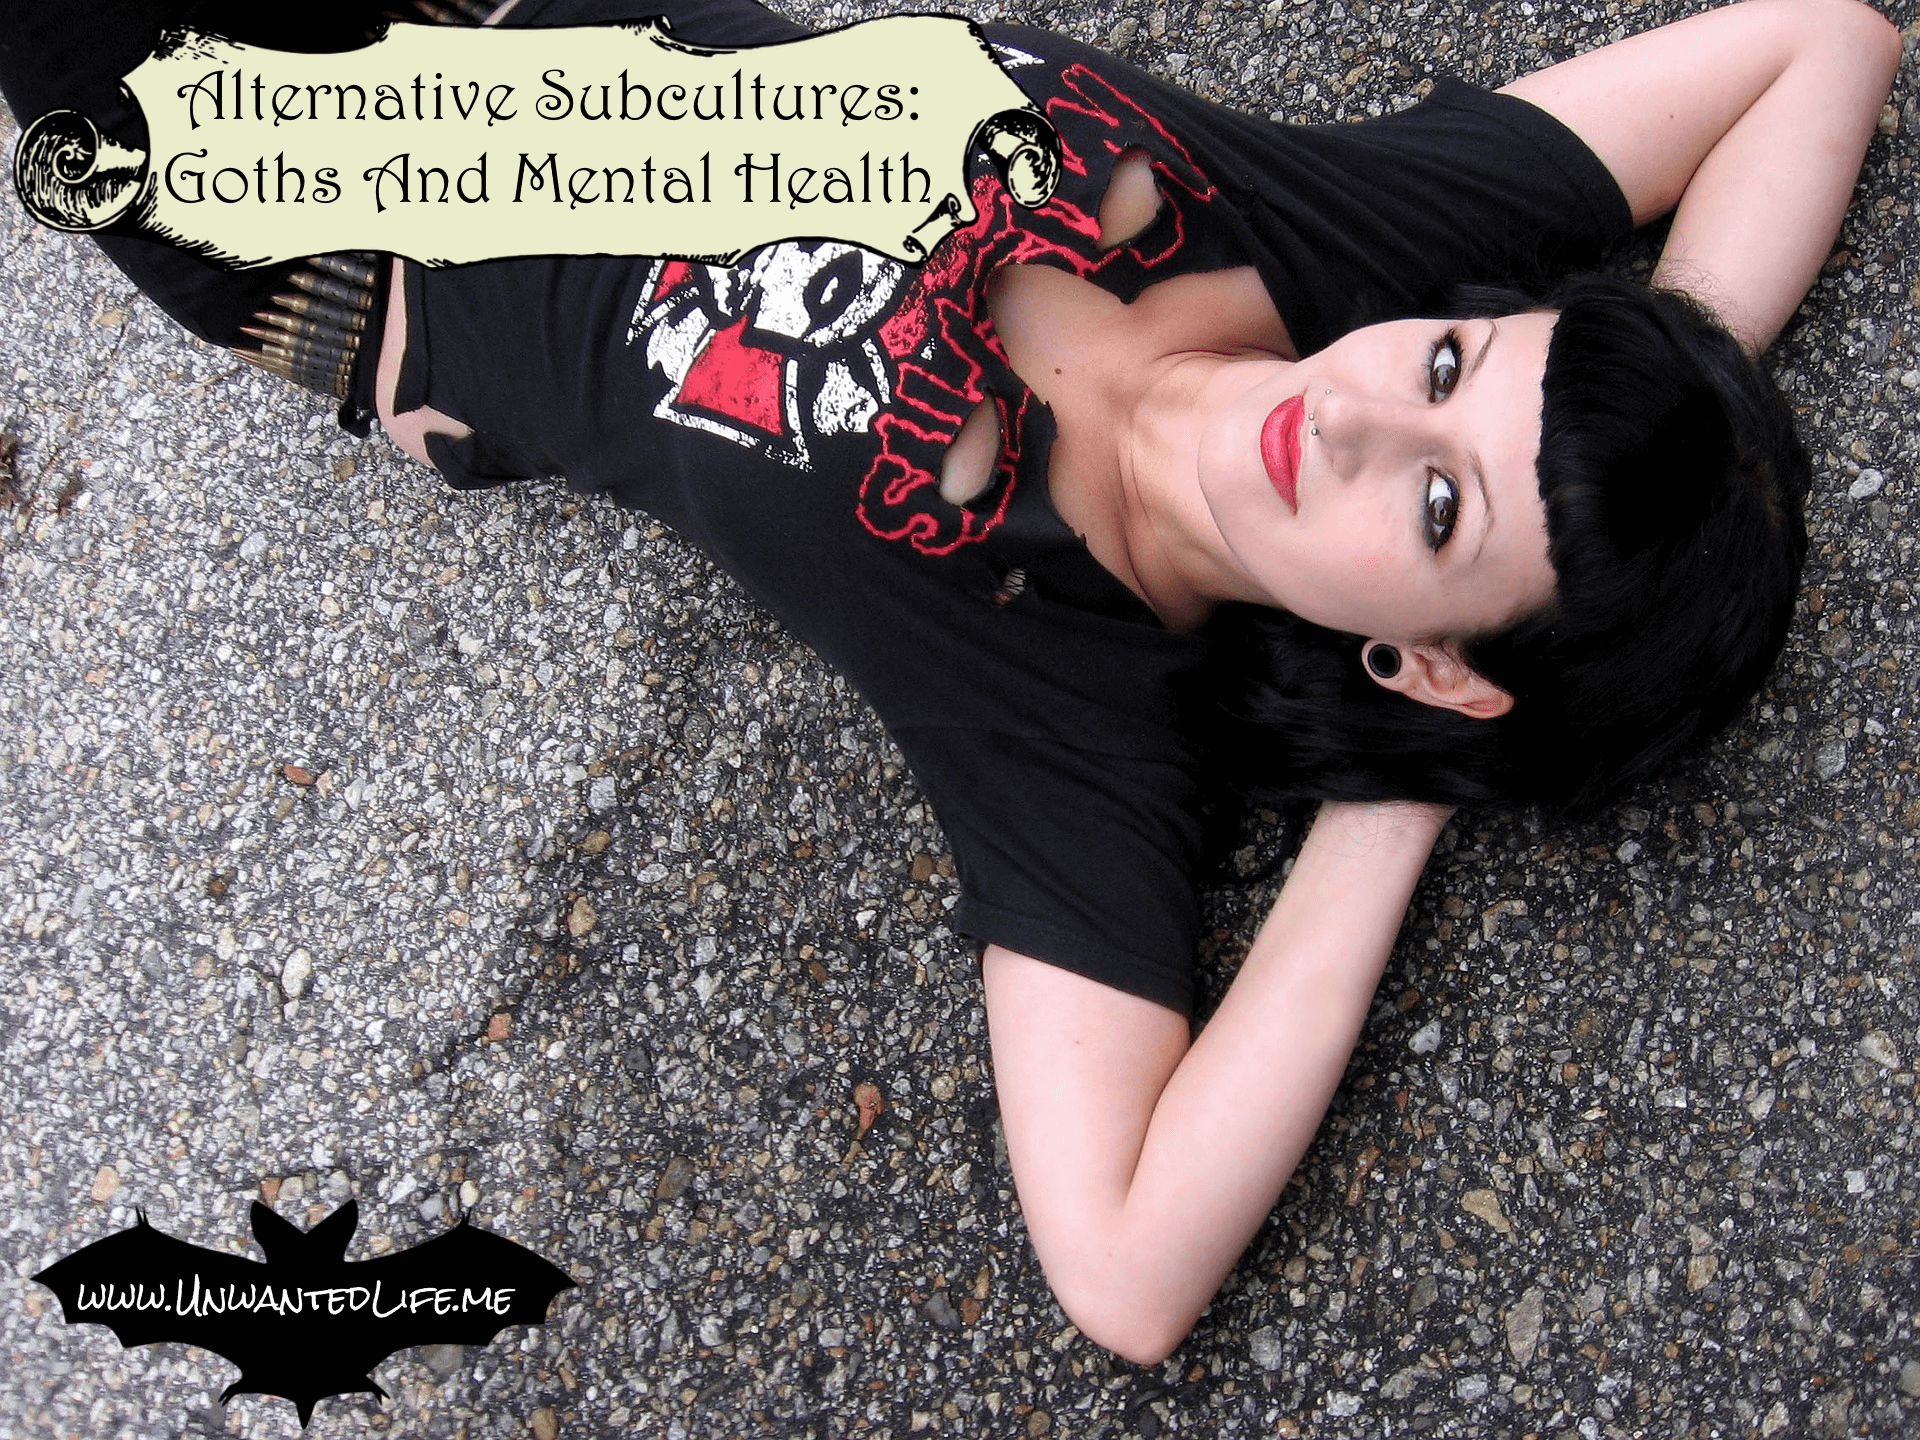 A photo of a female goth laying on a concreate ground outside to represent the topic of the article - Alternative Subcultures: Goths And Mental Health